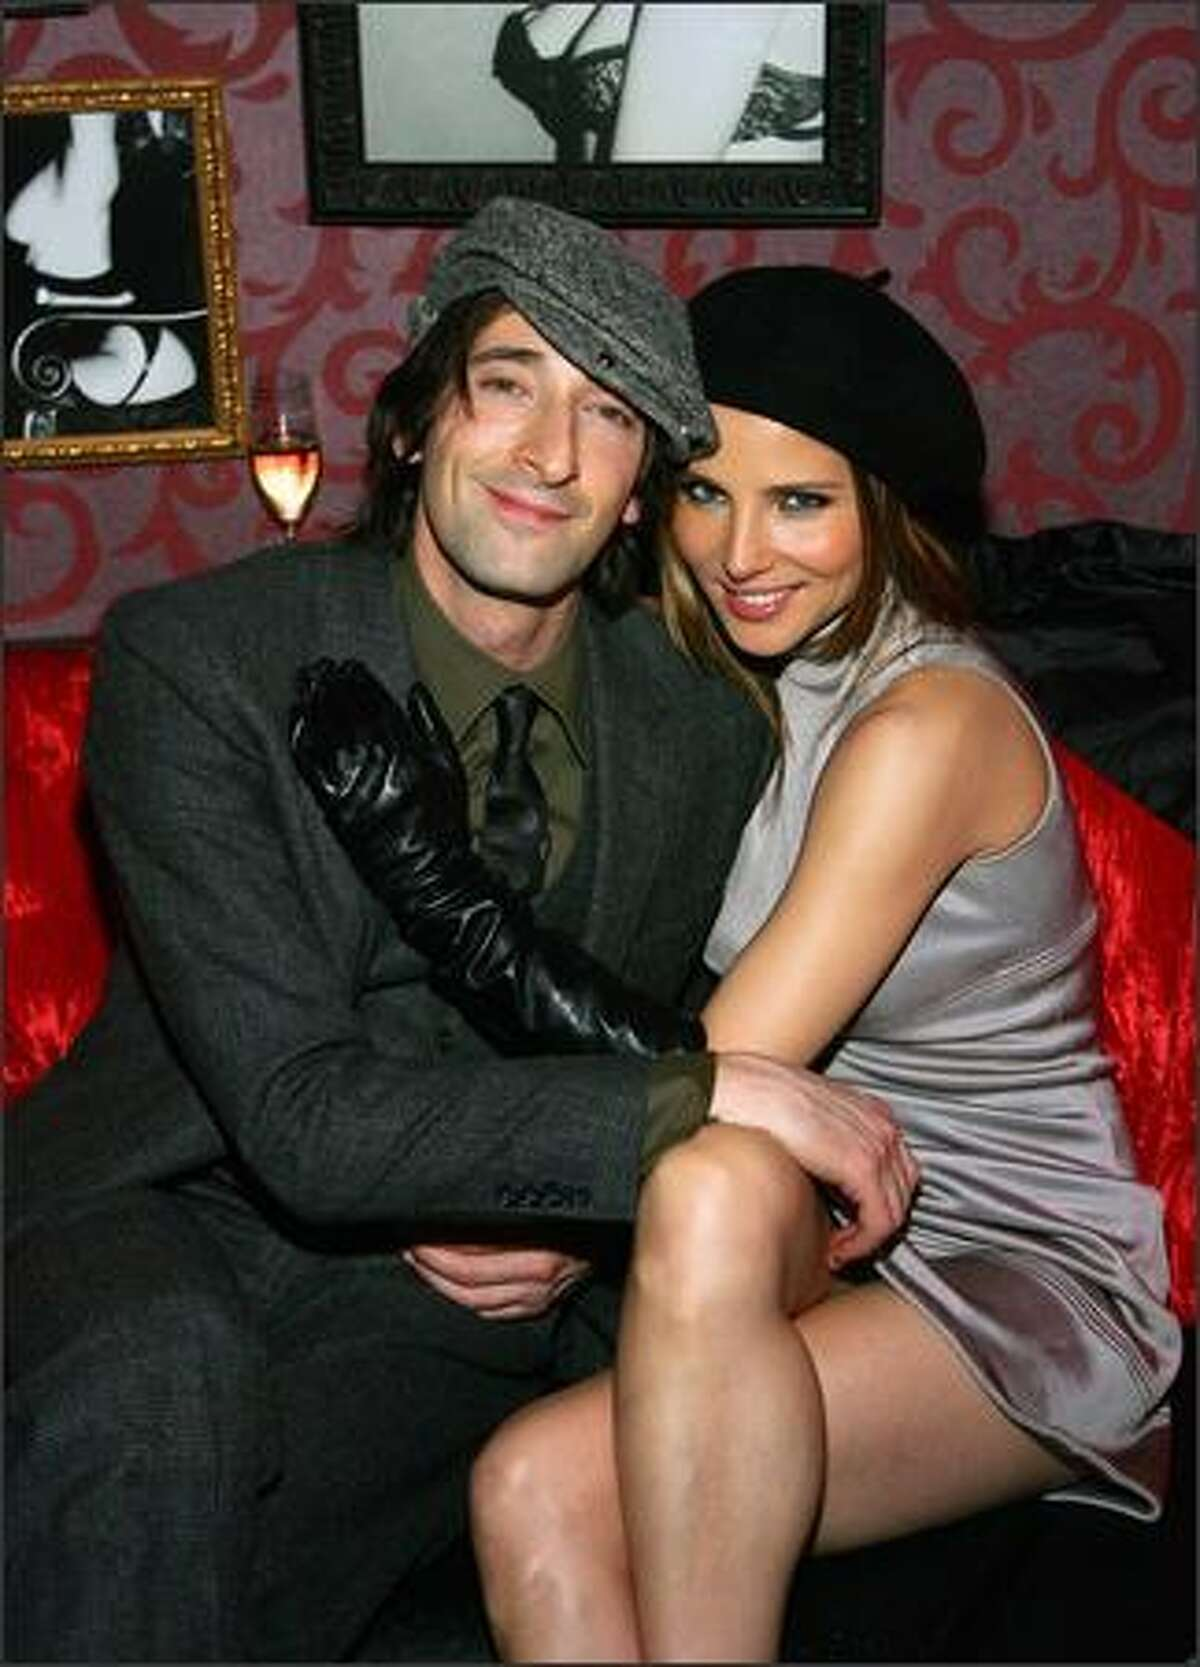 Actor Adrien Brody (L) and actress Elsa Pataky pose at the grand opening of the CatHouse at the Luxor Resort & Casino in Las Vegas, Nevada.